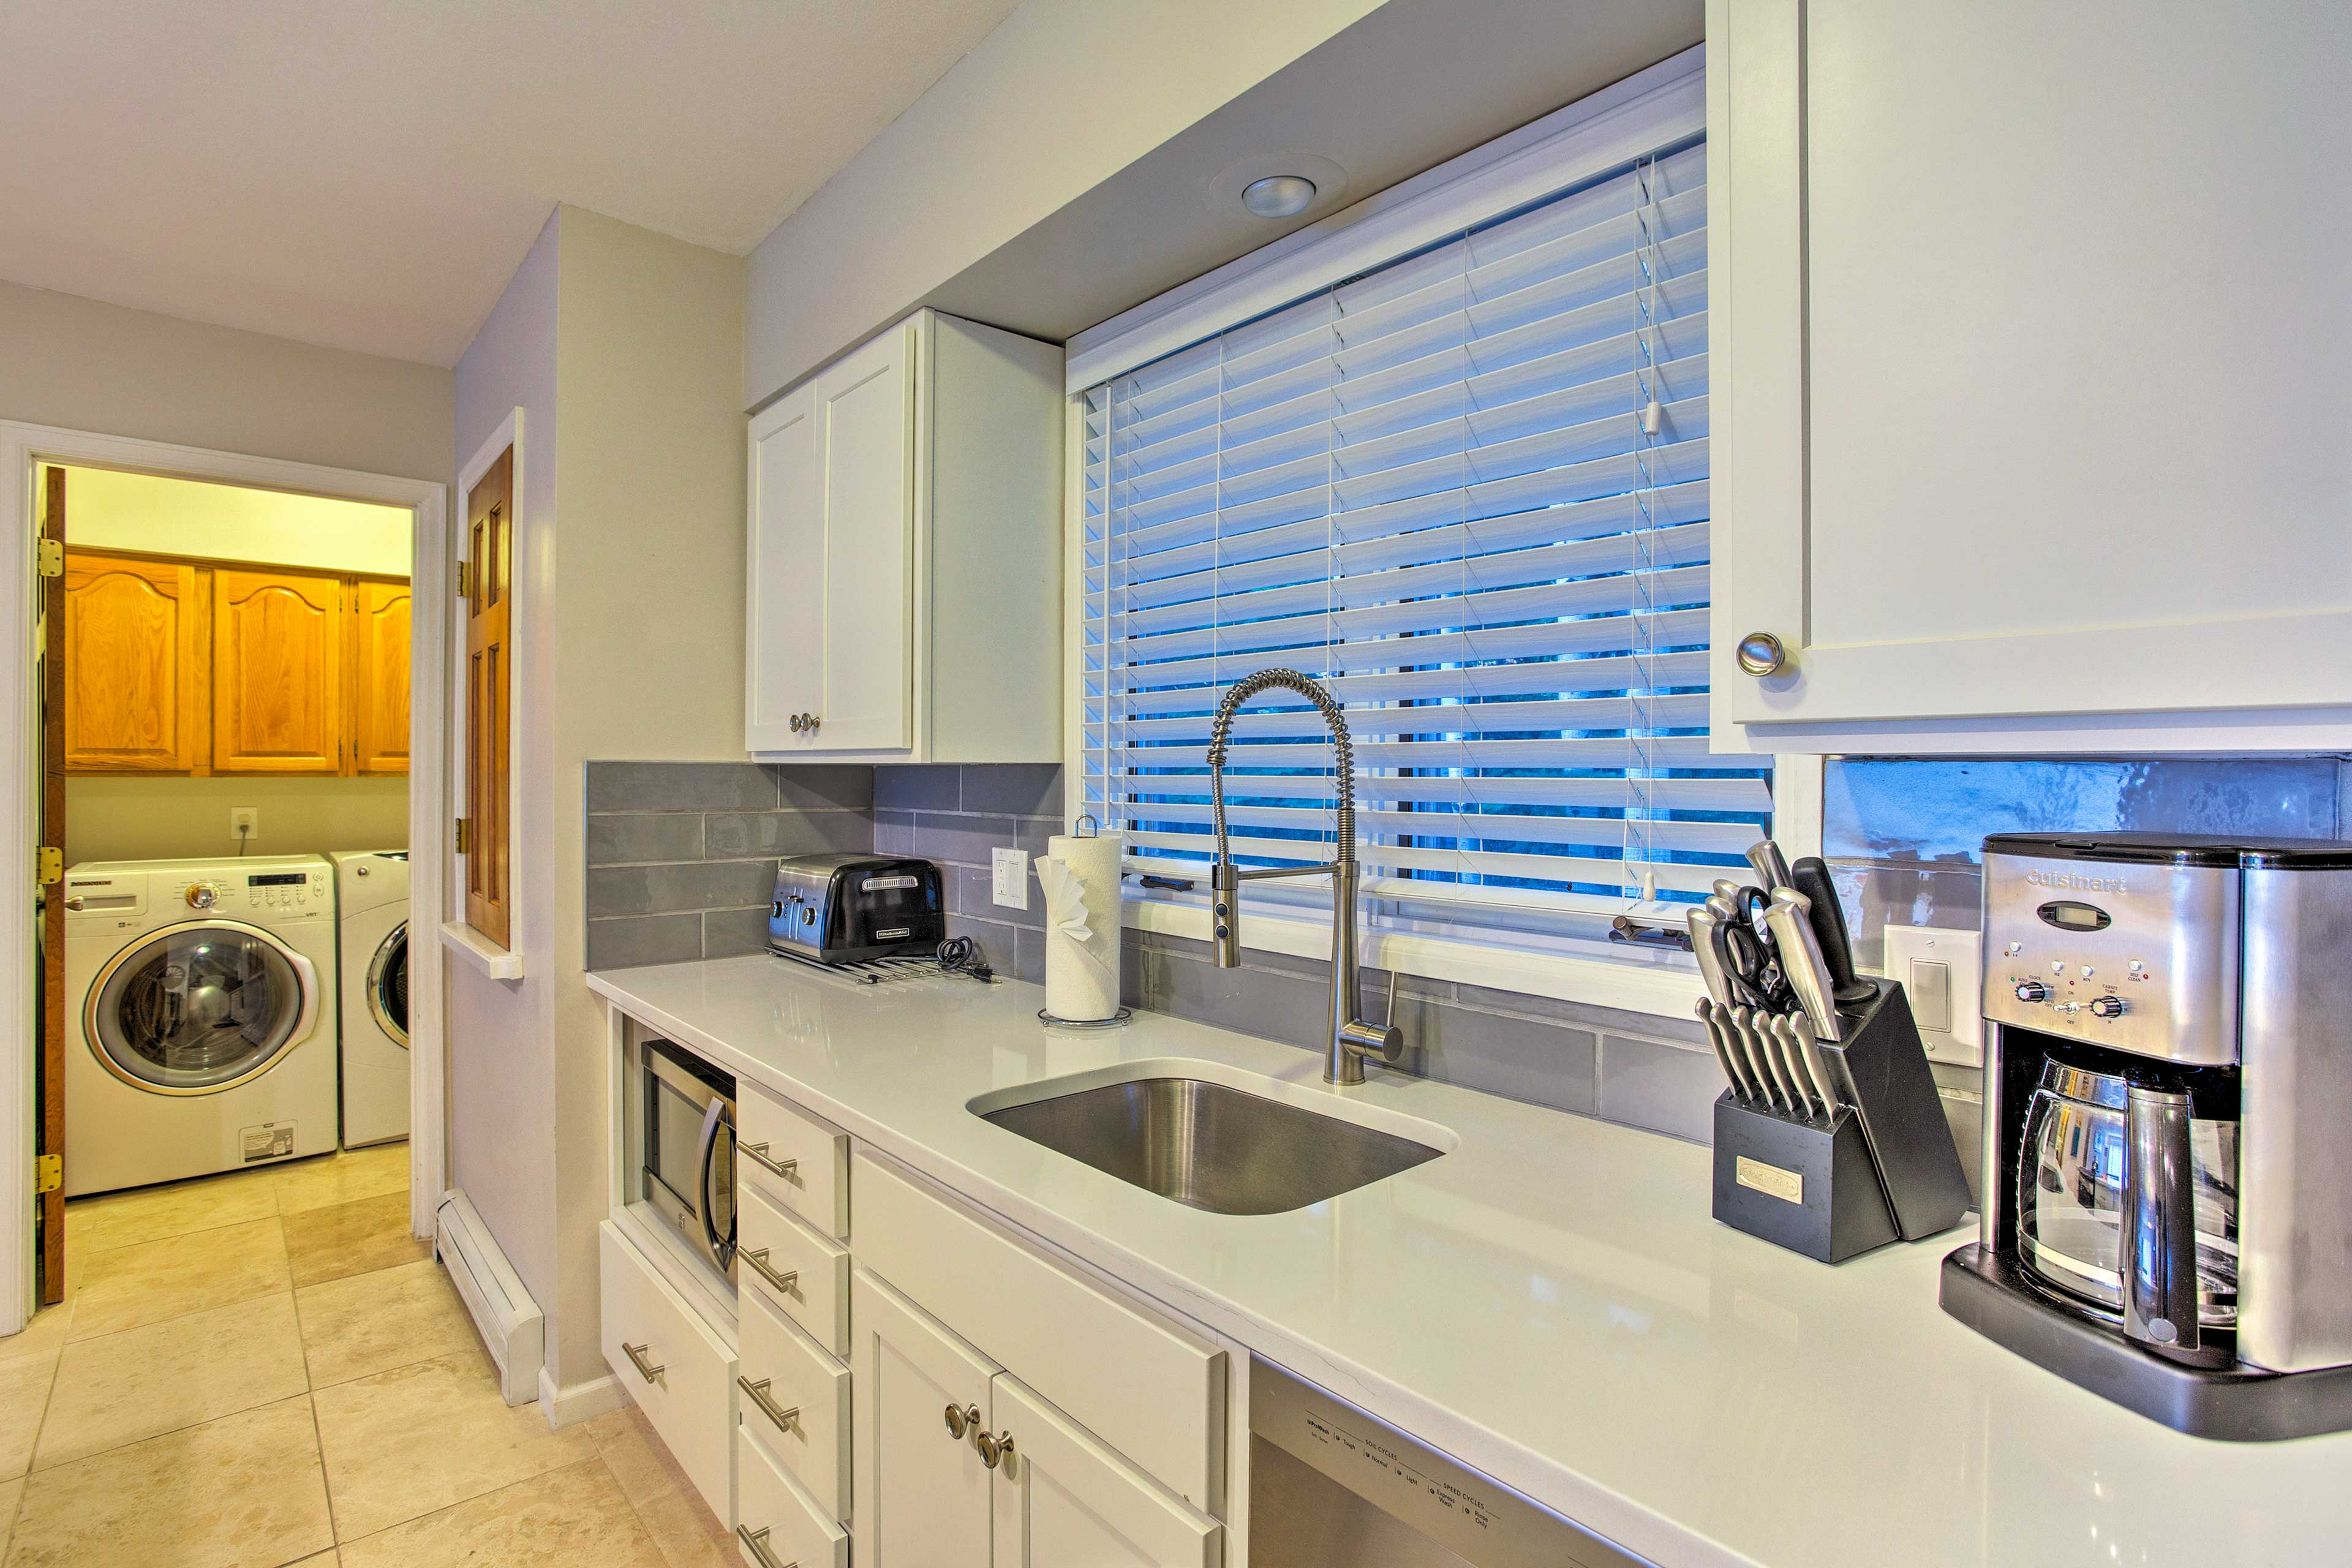 In-unit laundry machines are located just next to the kitchen.